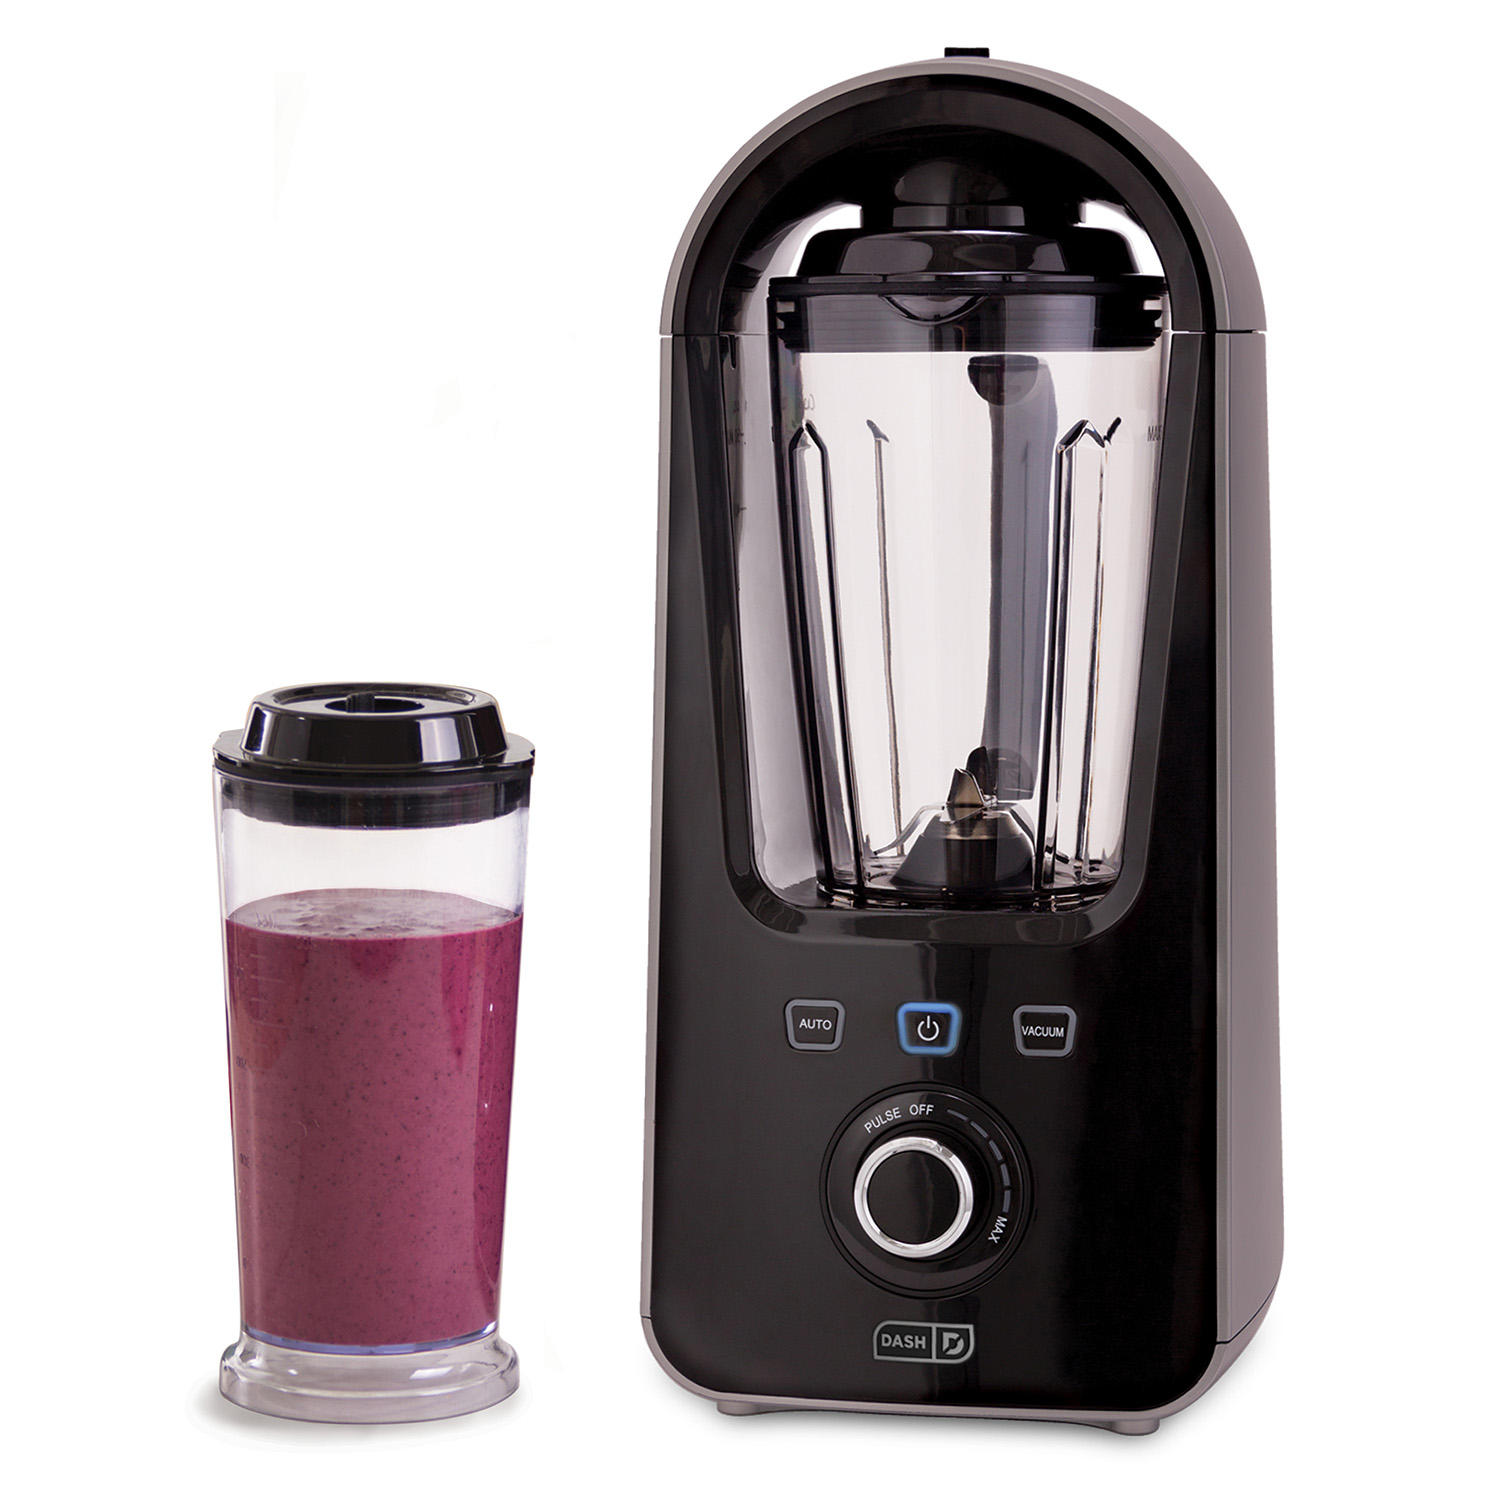 Dash Chef Series DVB300RMGT Cold Fusion Vacuum Blender (Graphite)